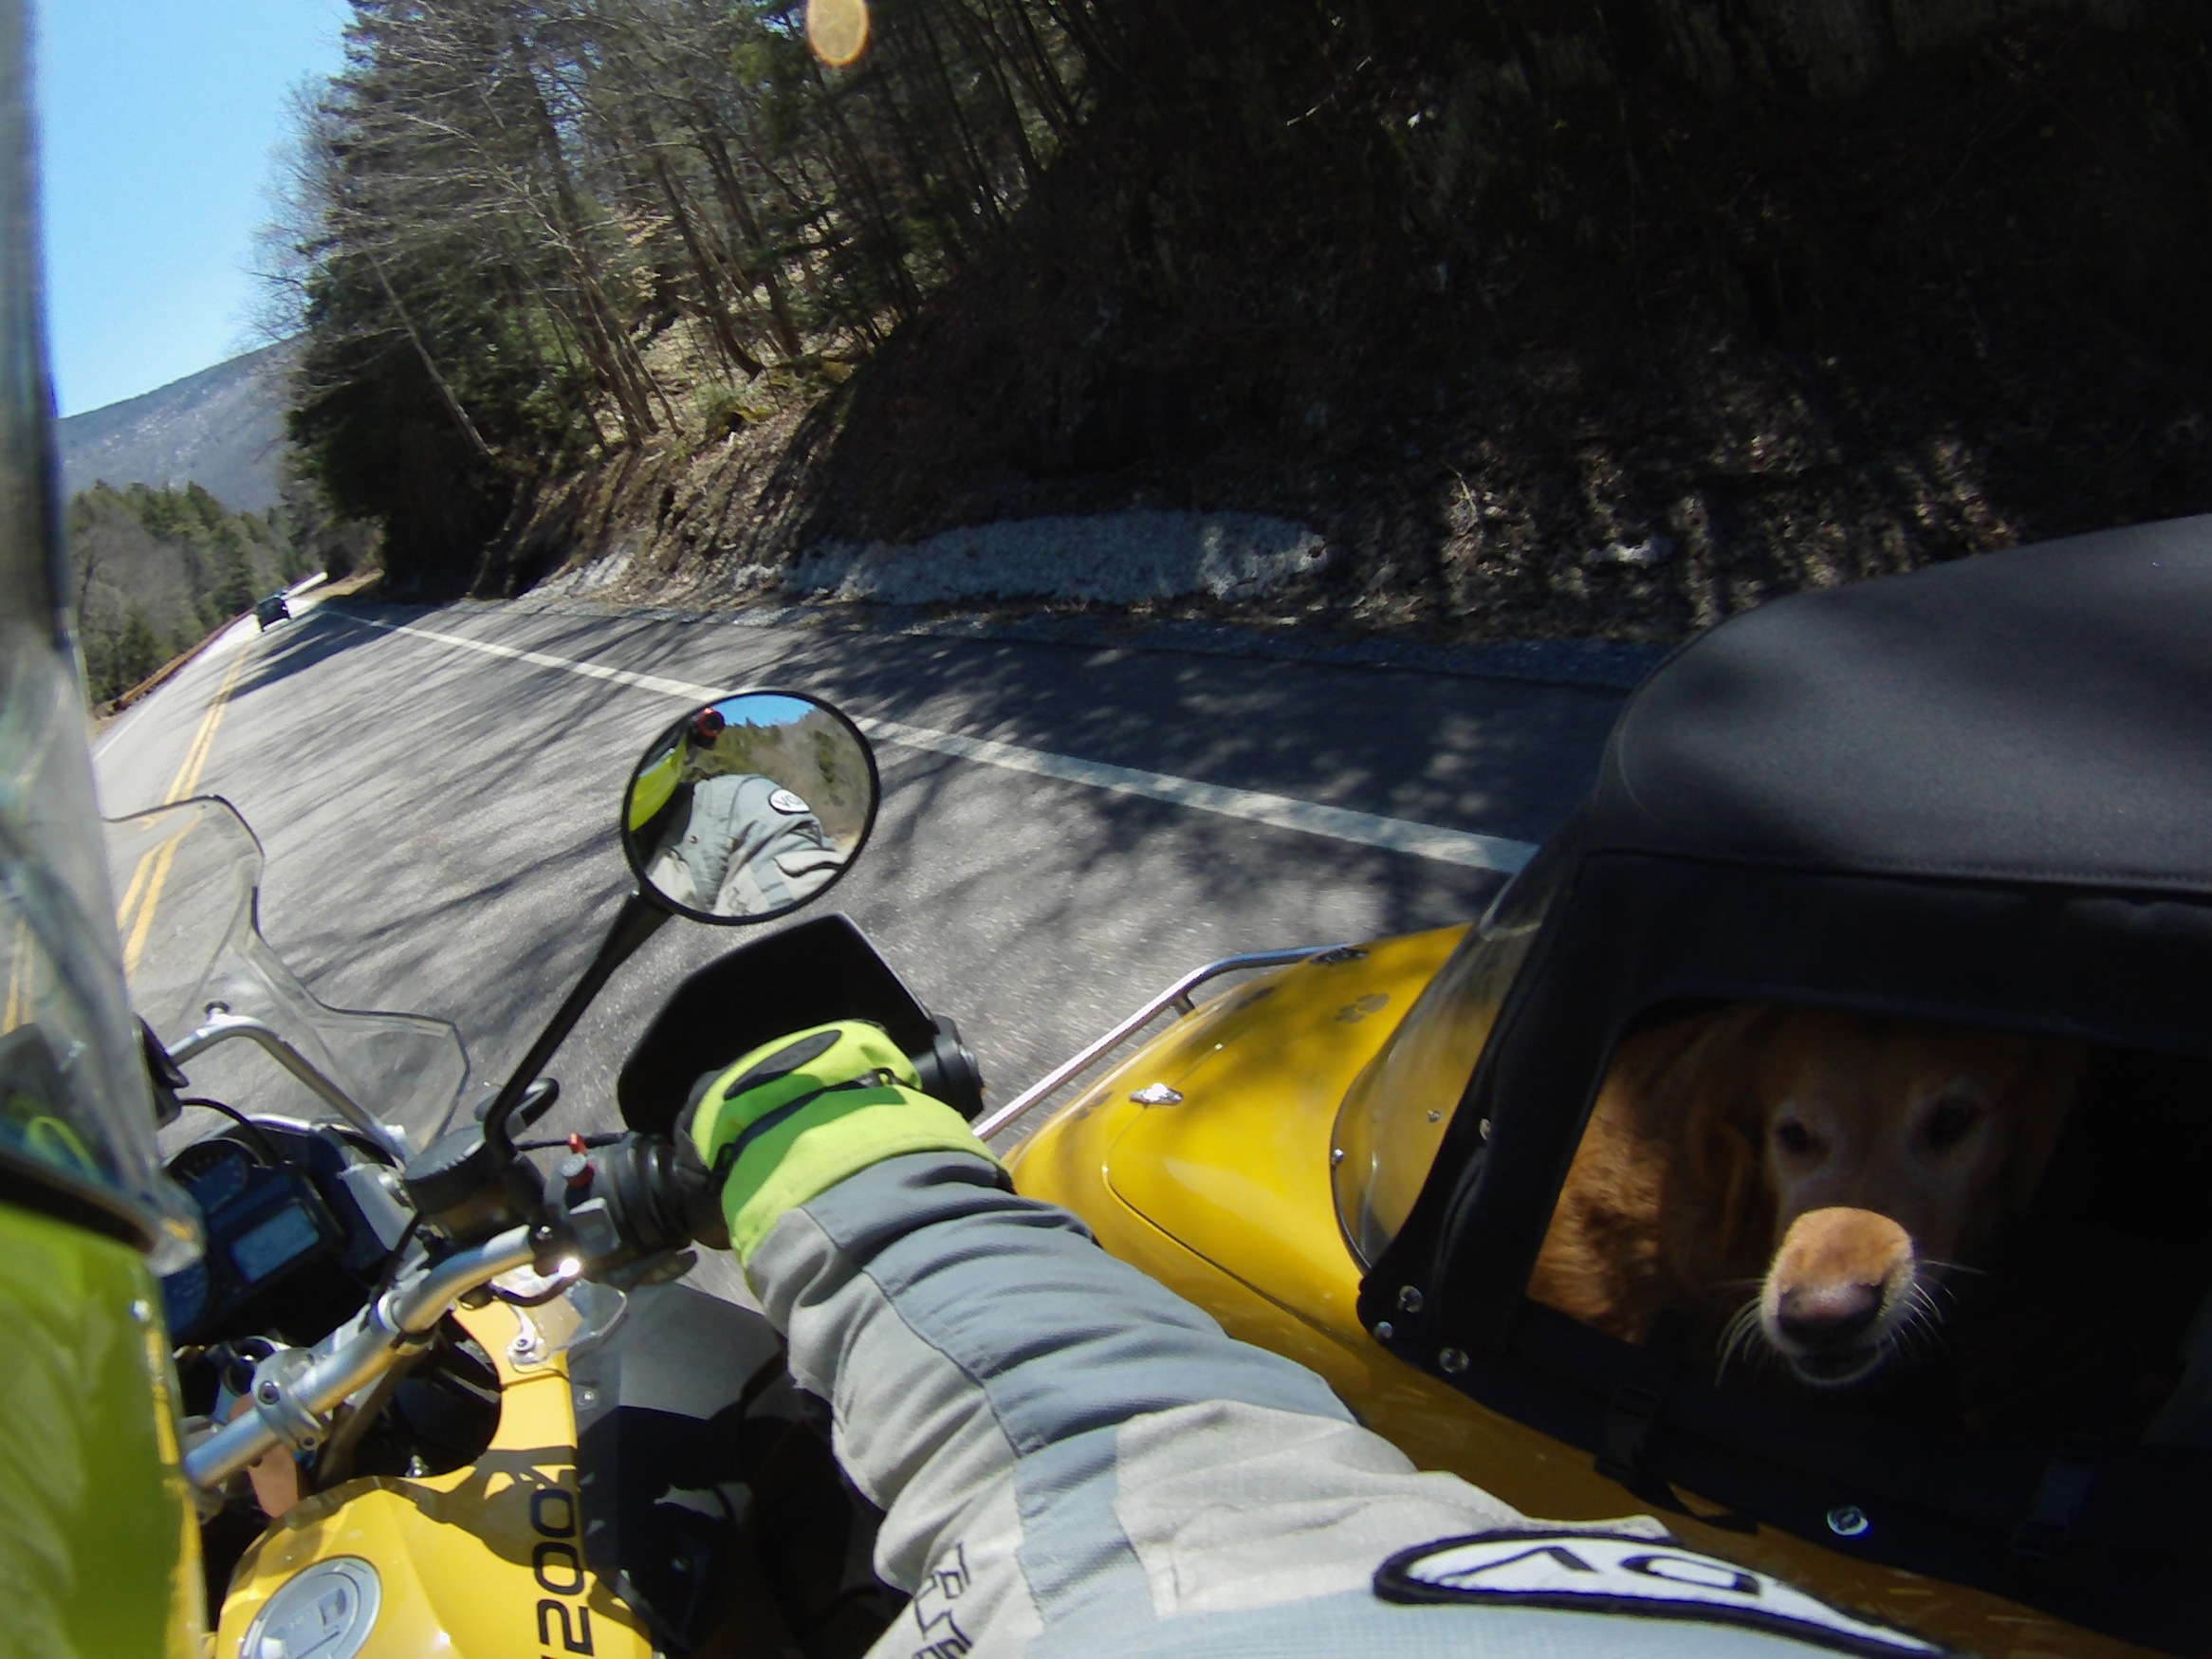 Barley hunkers down as we ride the Kancamagus Hwy in NH